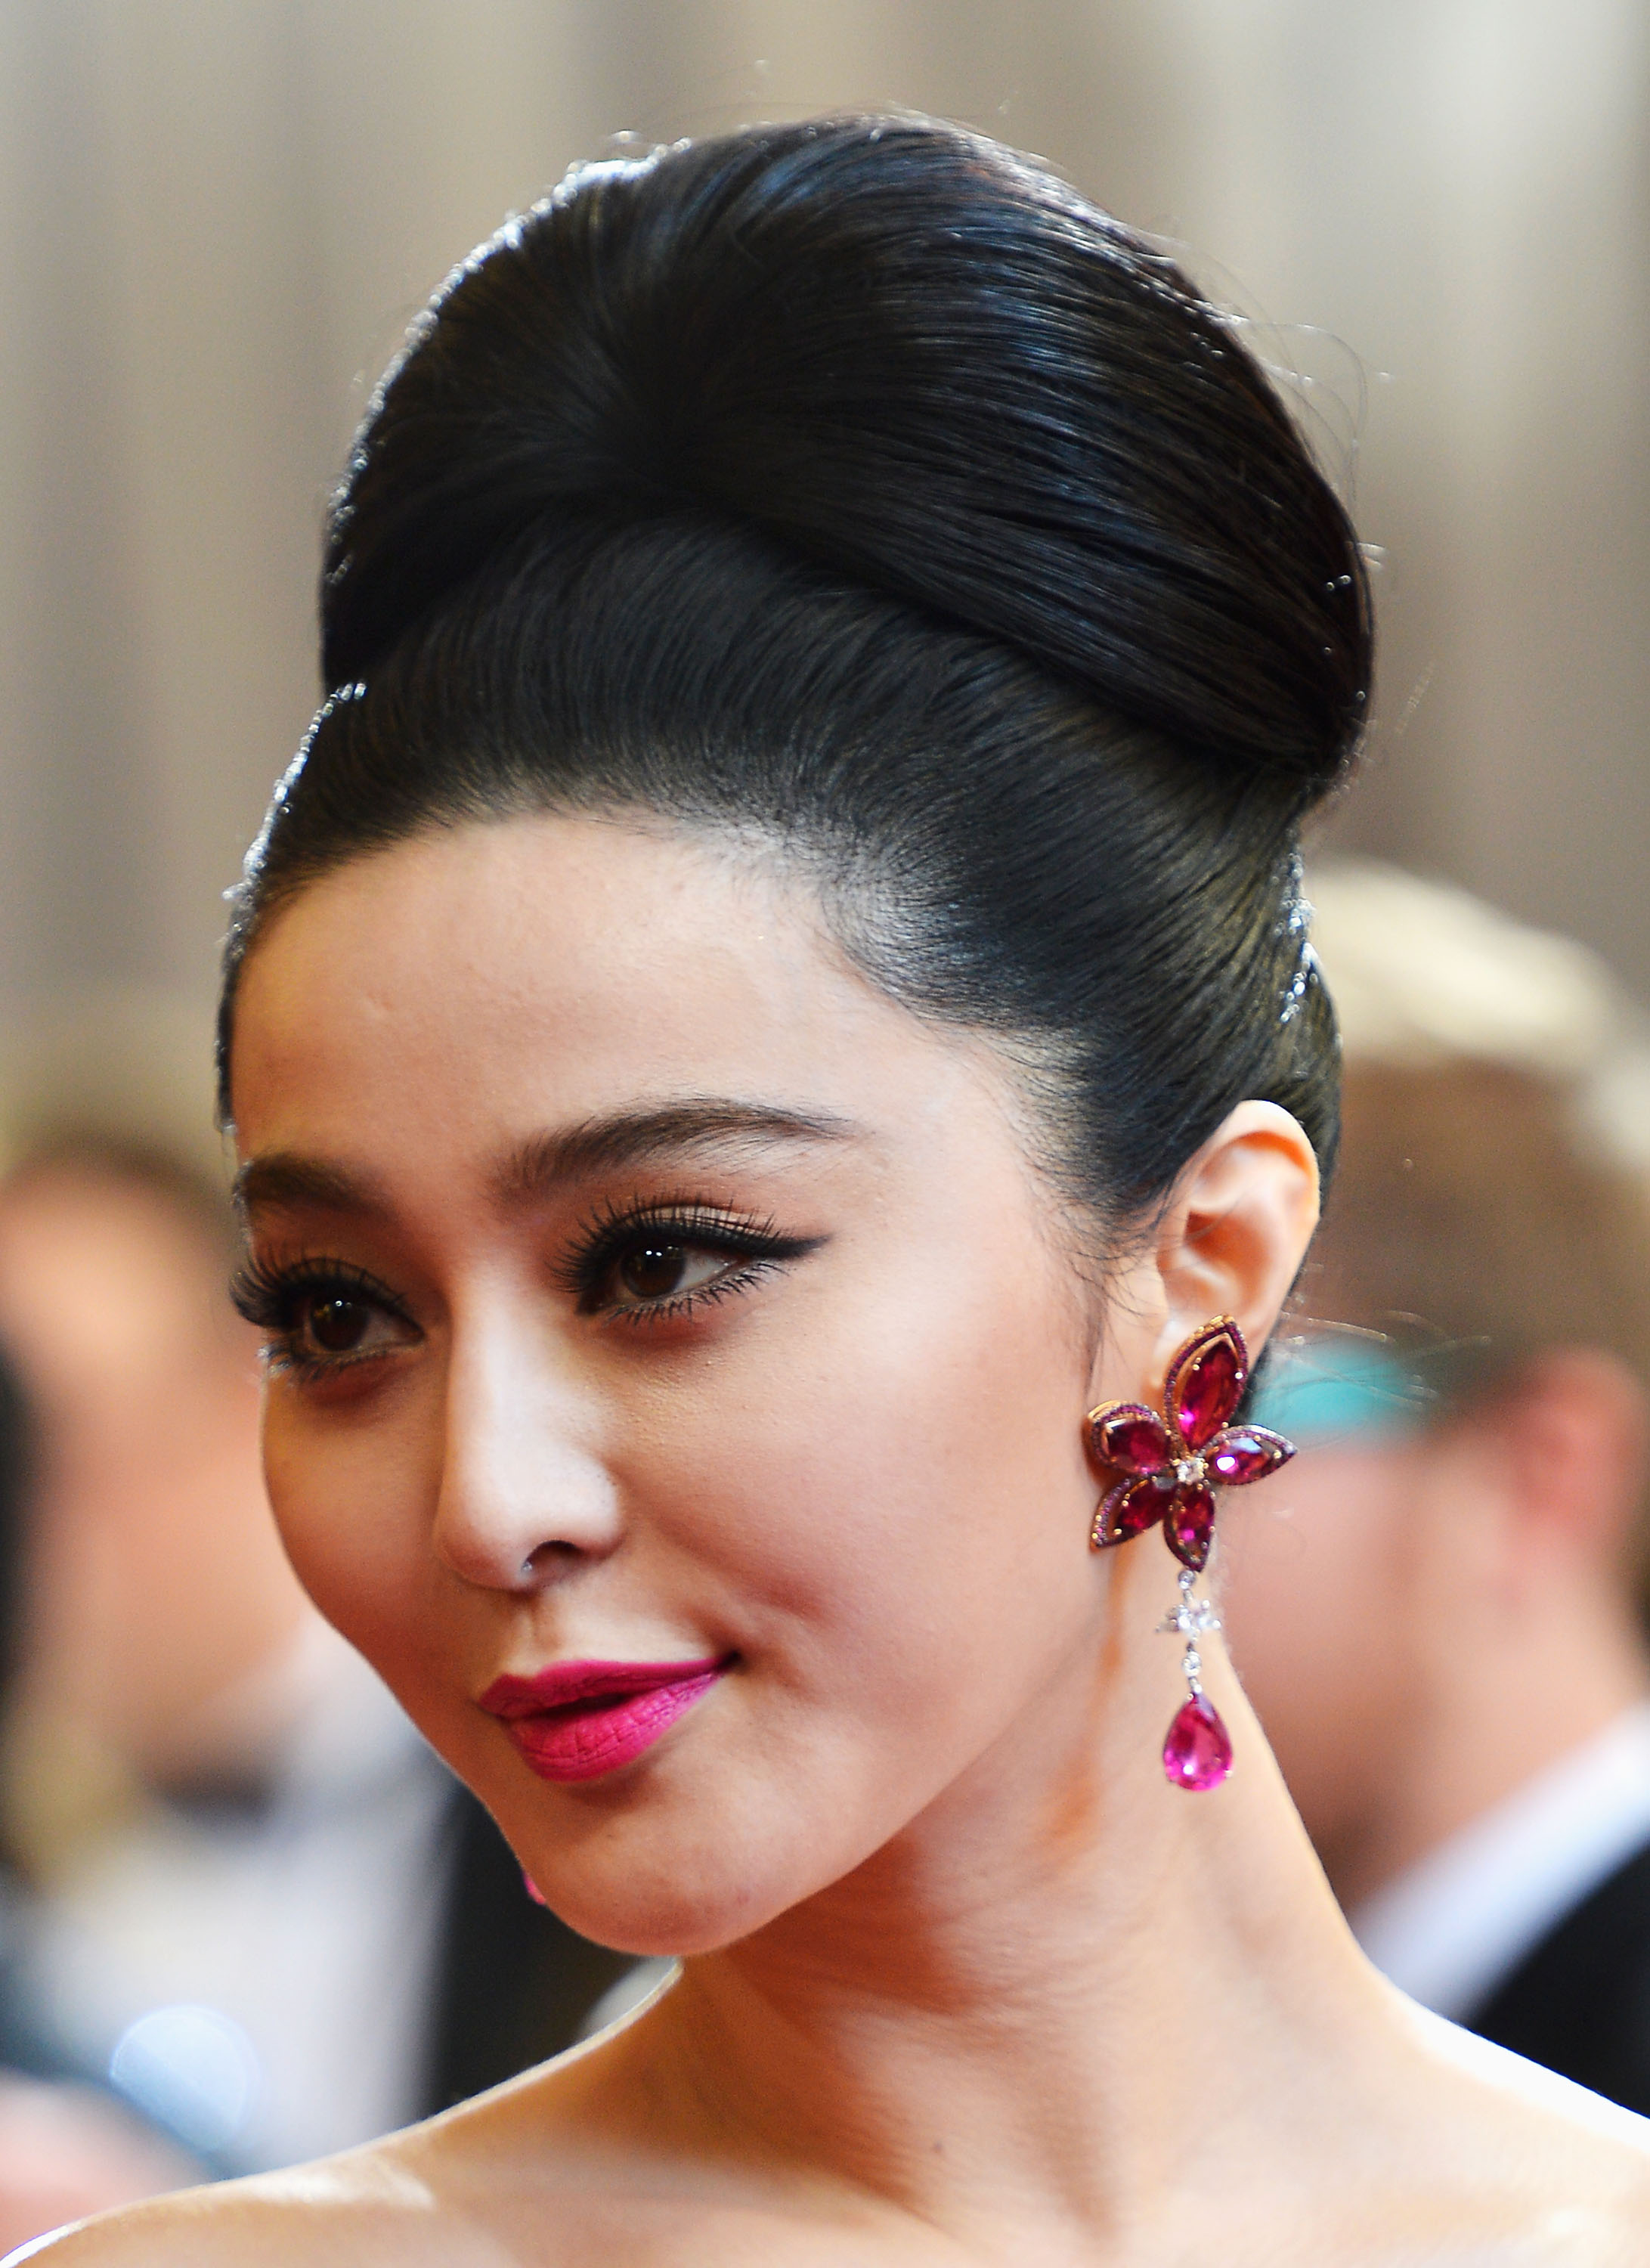 Www Bing Comhellao: 26 Celebrity Hairstyles Everyone Should Try Before Turning